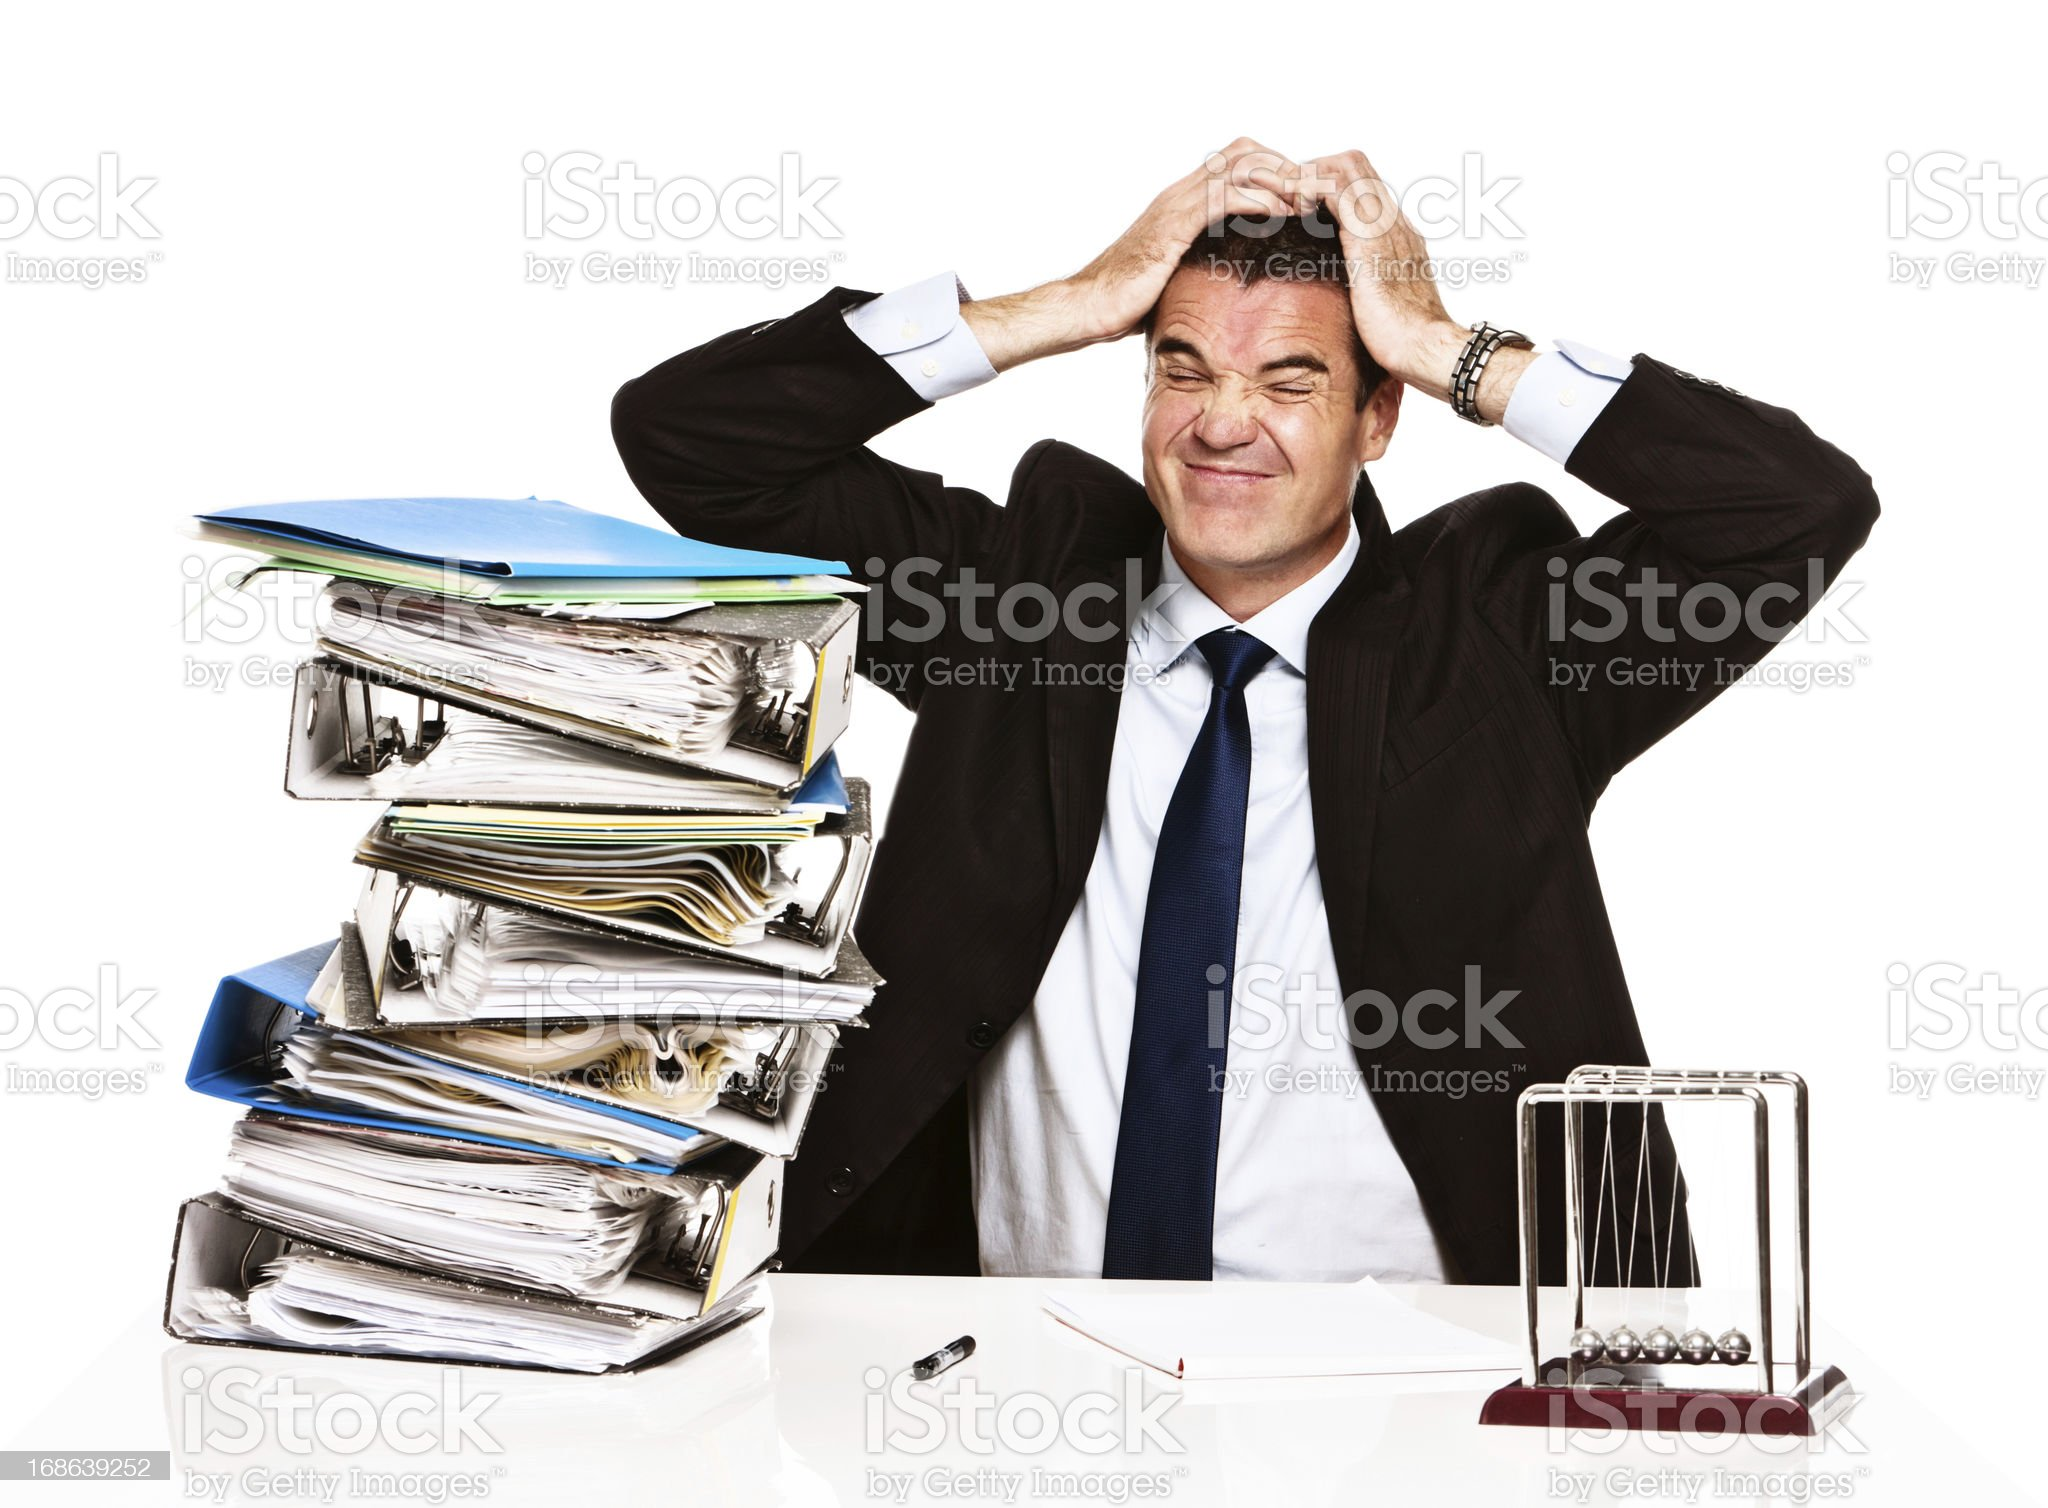 Overwhelmed businessman tears hair out in frustration over work overload royalty-free stock photo